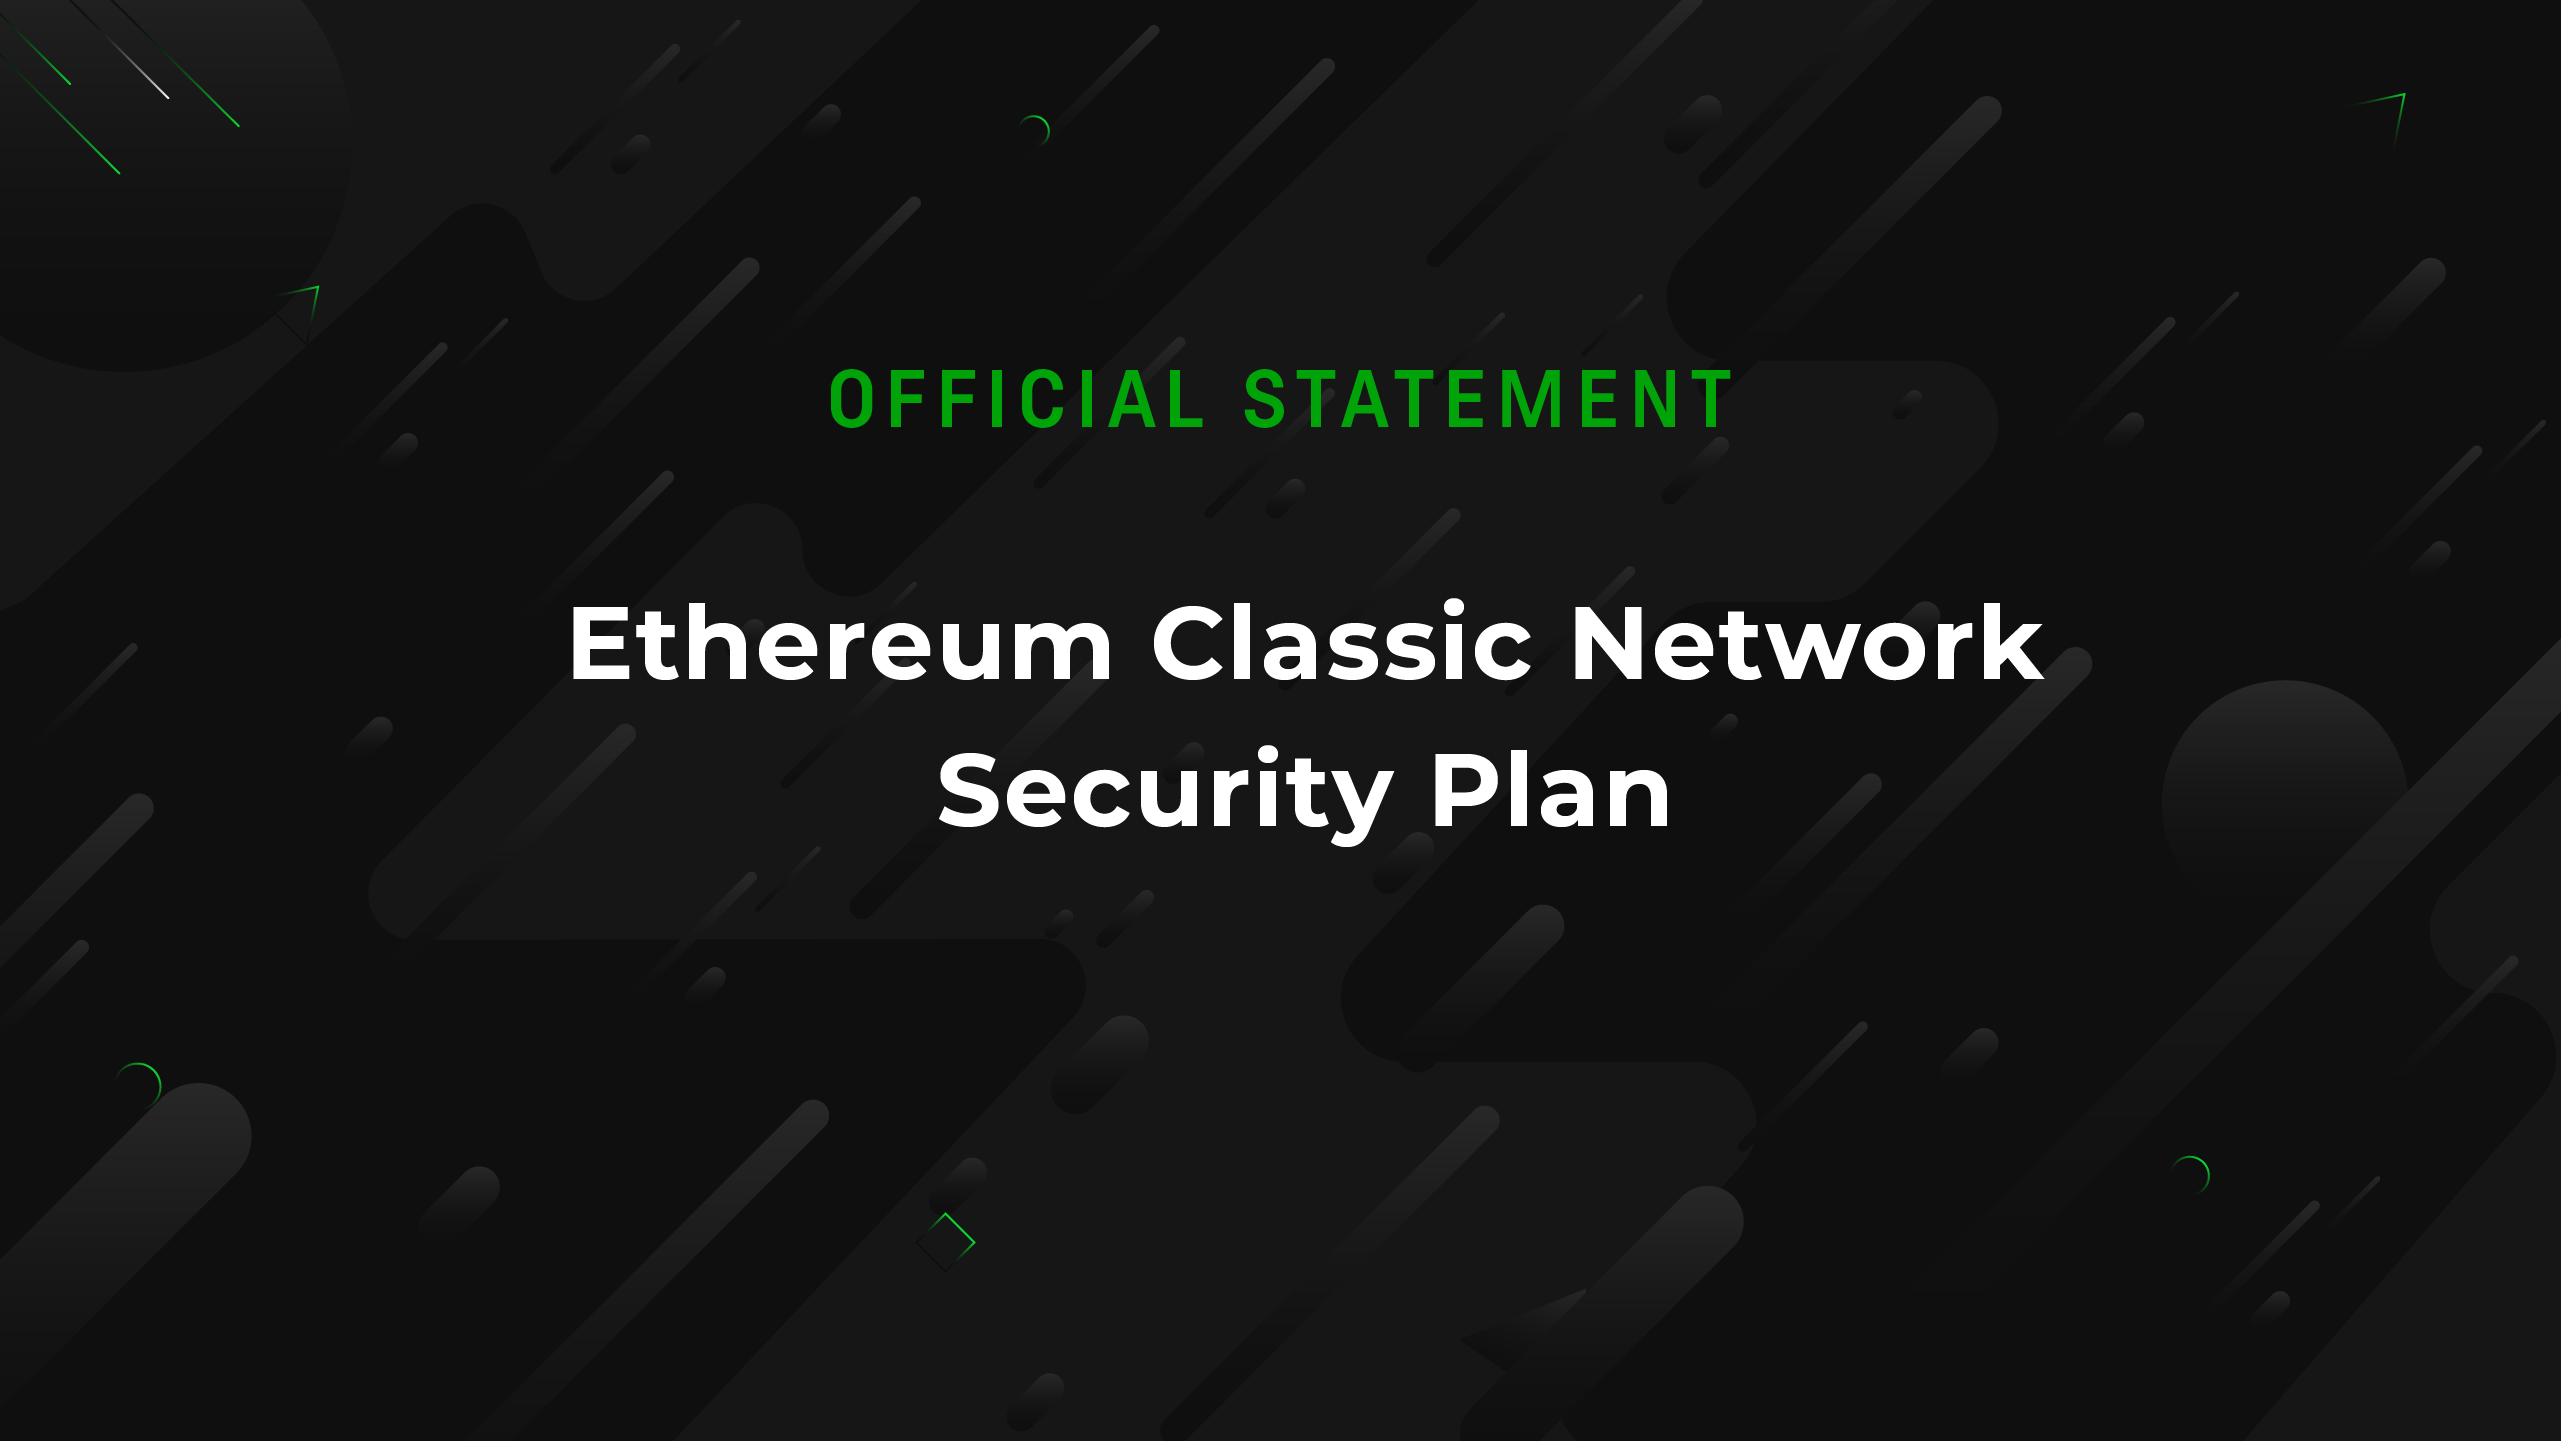 ETC Network Security Plan